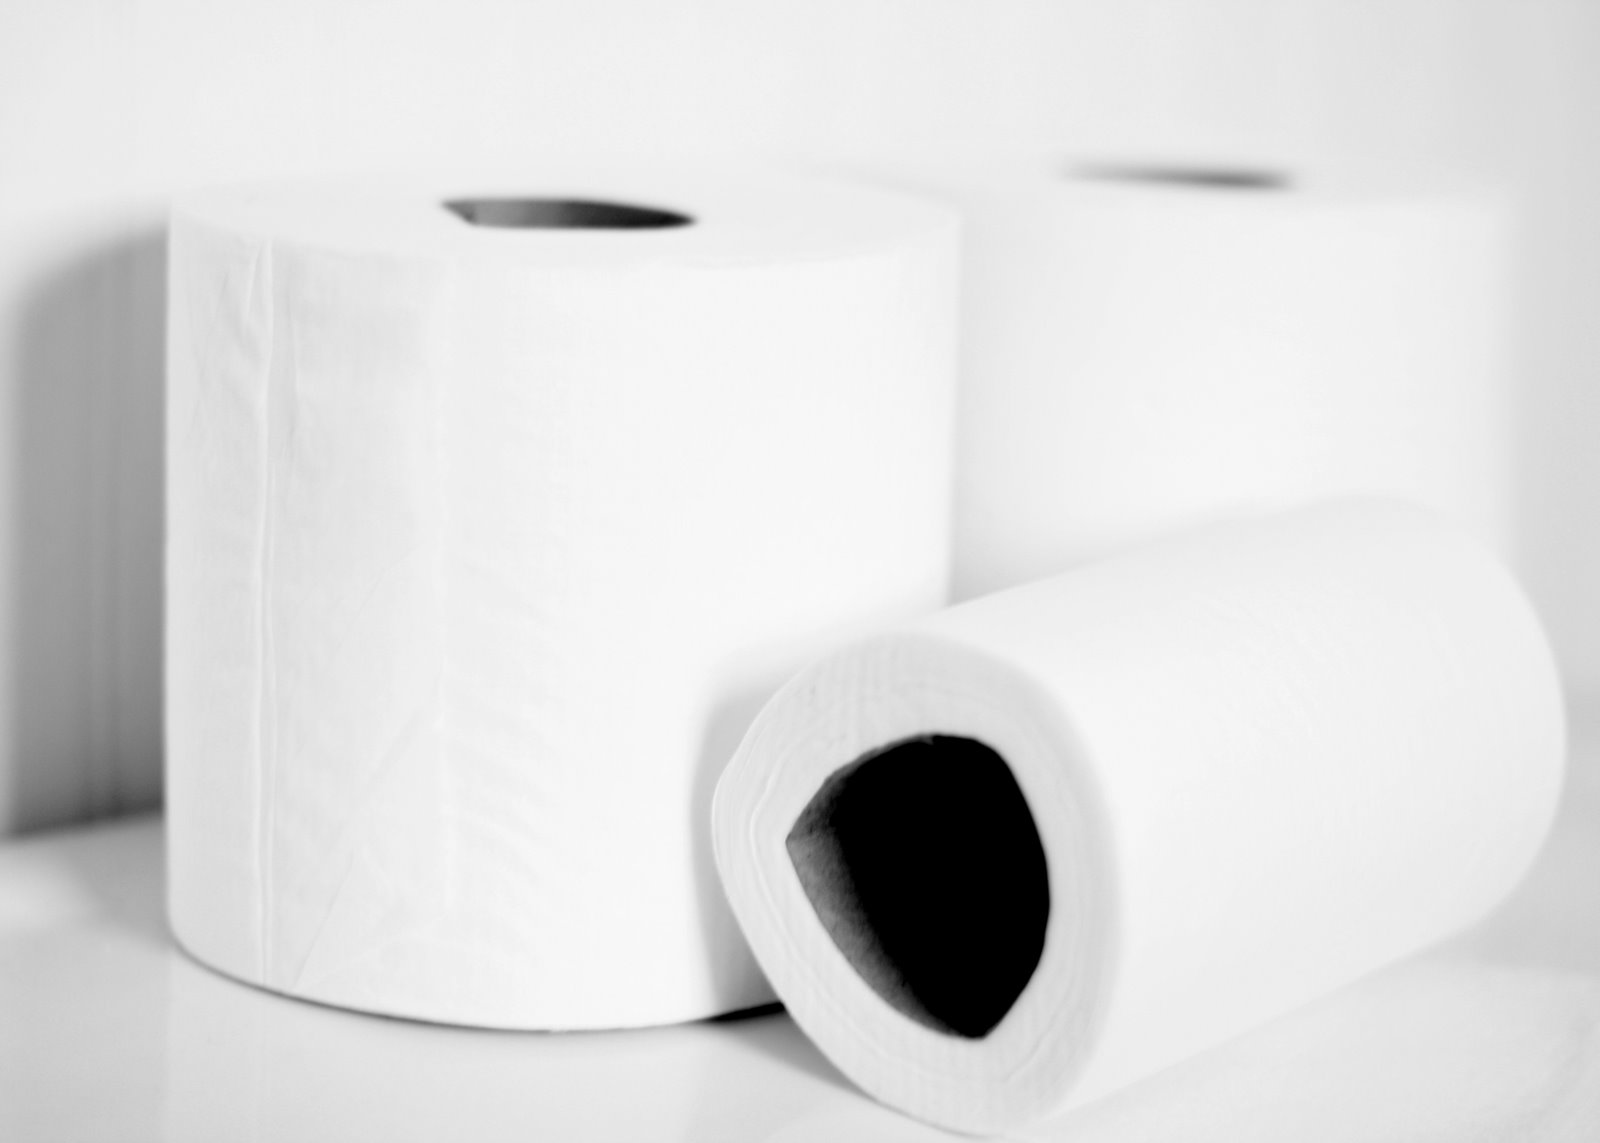 buy cheap toilet paper online Southdragon toilet tissue includes standard size toilet tissue roll and jumbo roll toilet tissue best service and competitive wholesale price.